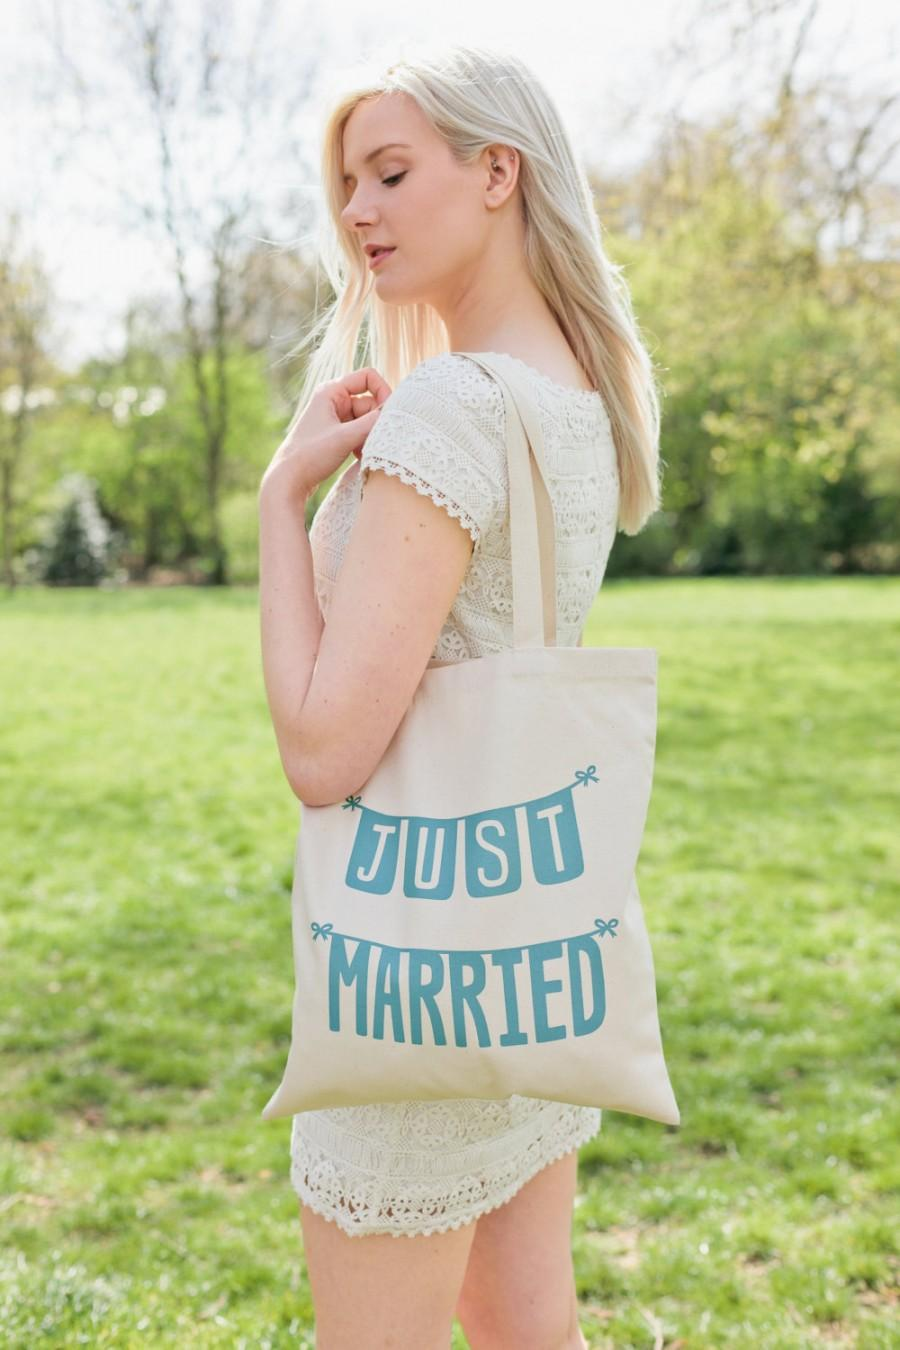 زفاف - Just Married Tote - Bridal Tote Bag - Wedding Tote Bag - Just Married Wedding Tote - Honeymoon Beach Bag - Bride Gift - bachelorette party